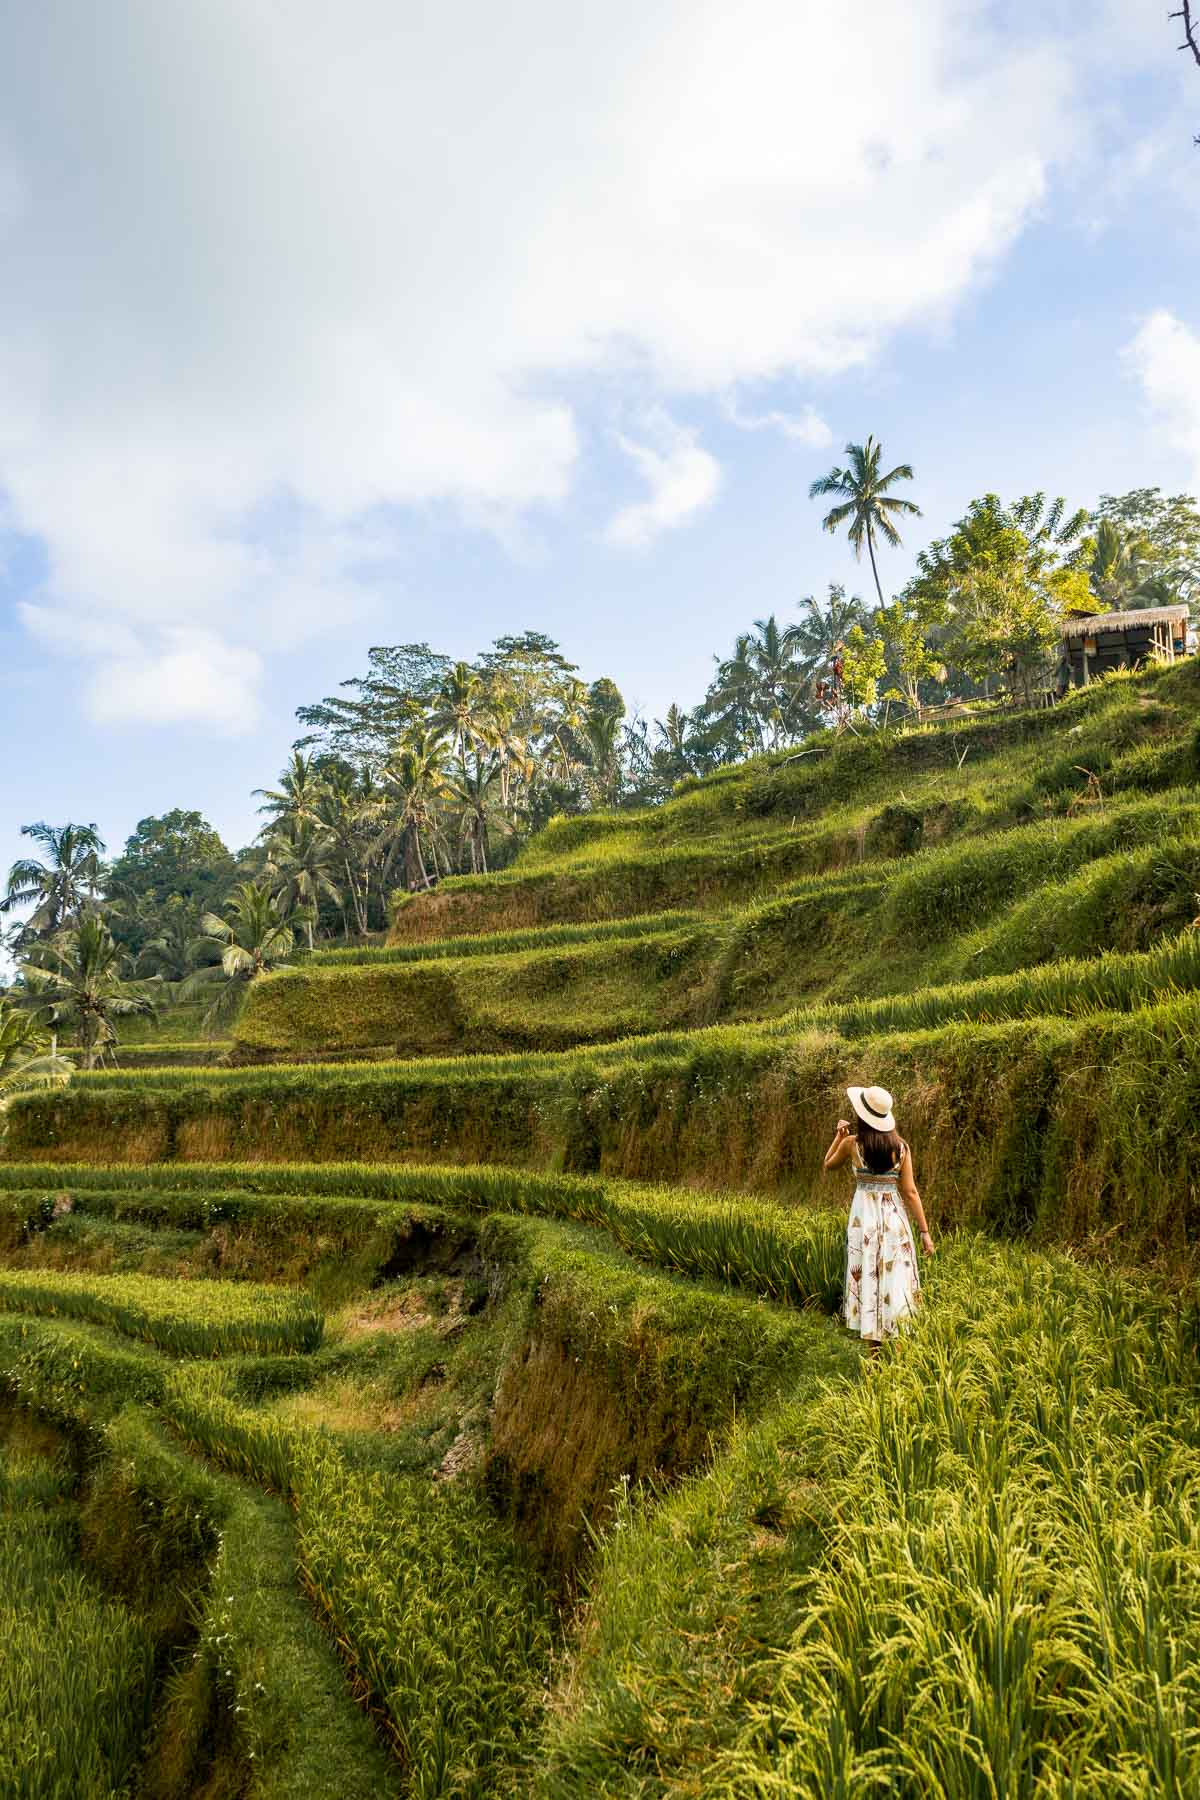 Girl standing among the lush green rice paddies at Tegallalang Rice Terraces in Bali